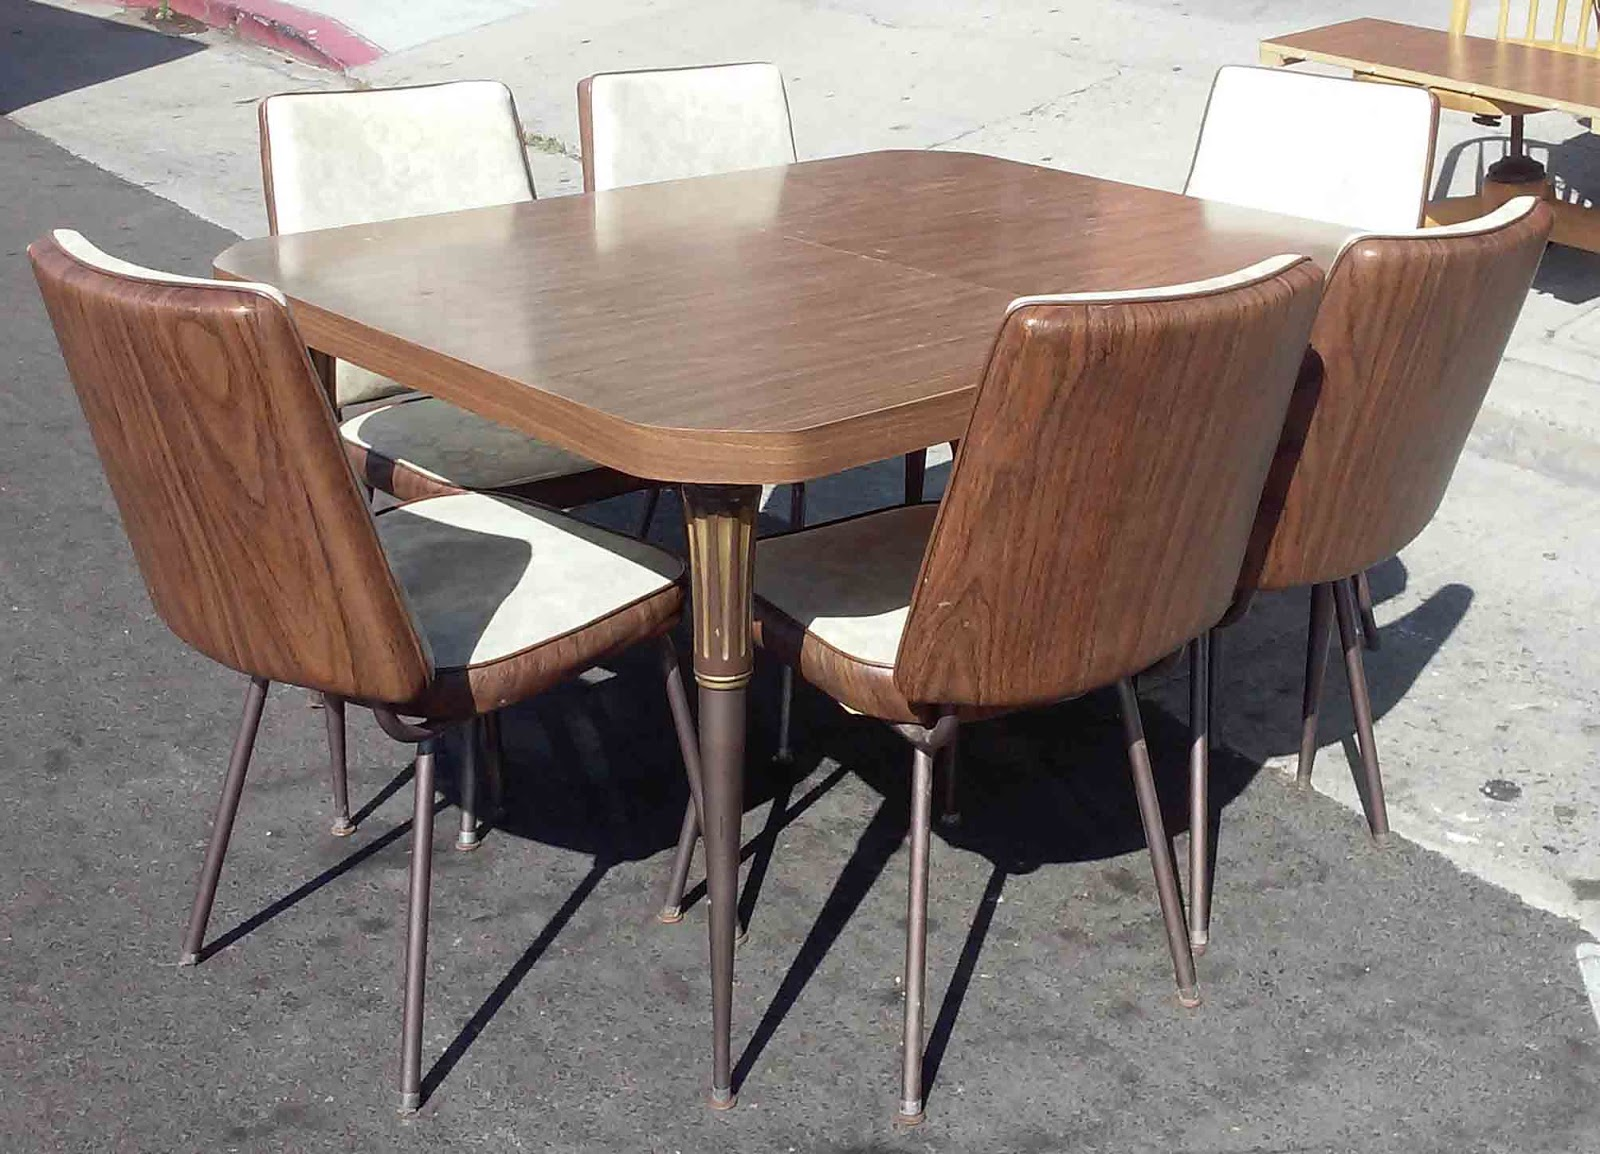 UHURU FURNITURE COLLECTIBLES SOLD REDUCED 70s Vintage